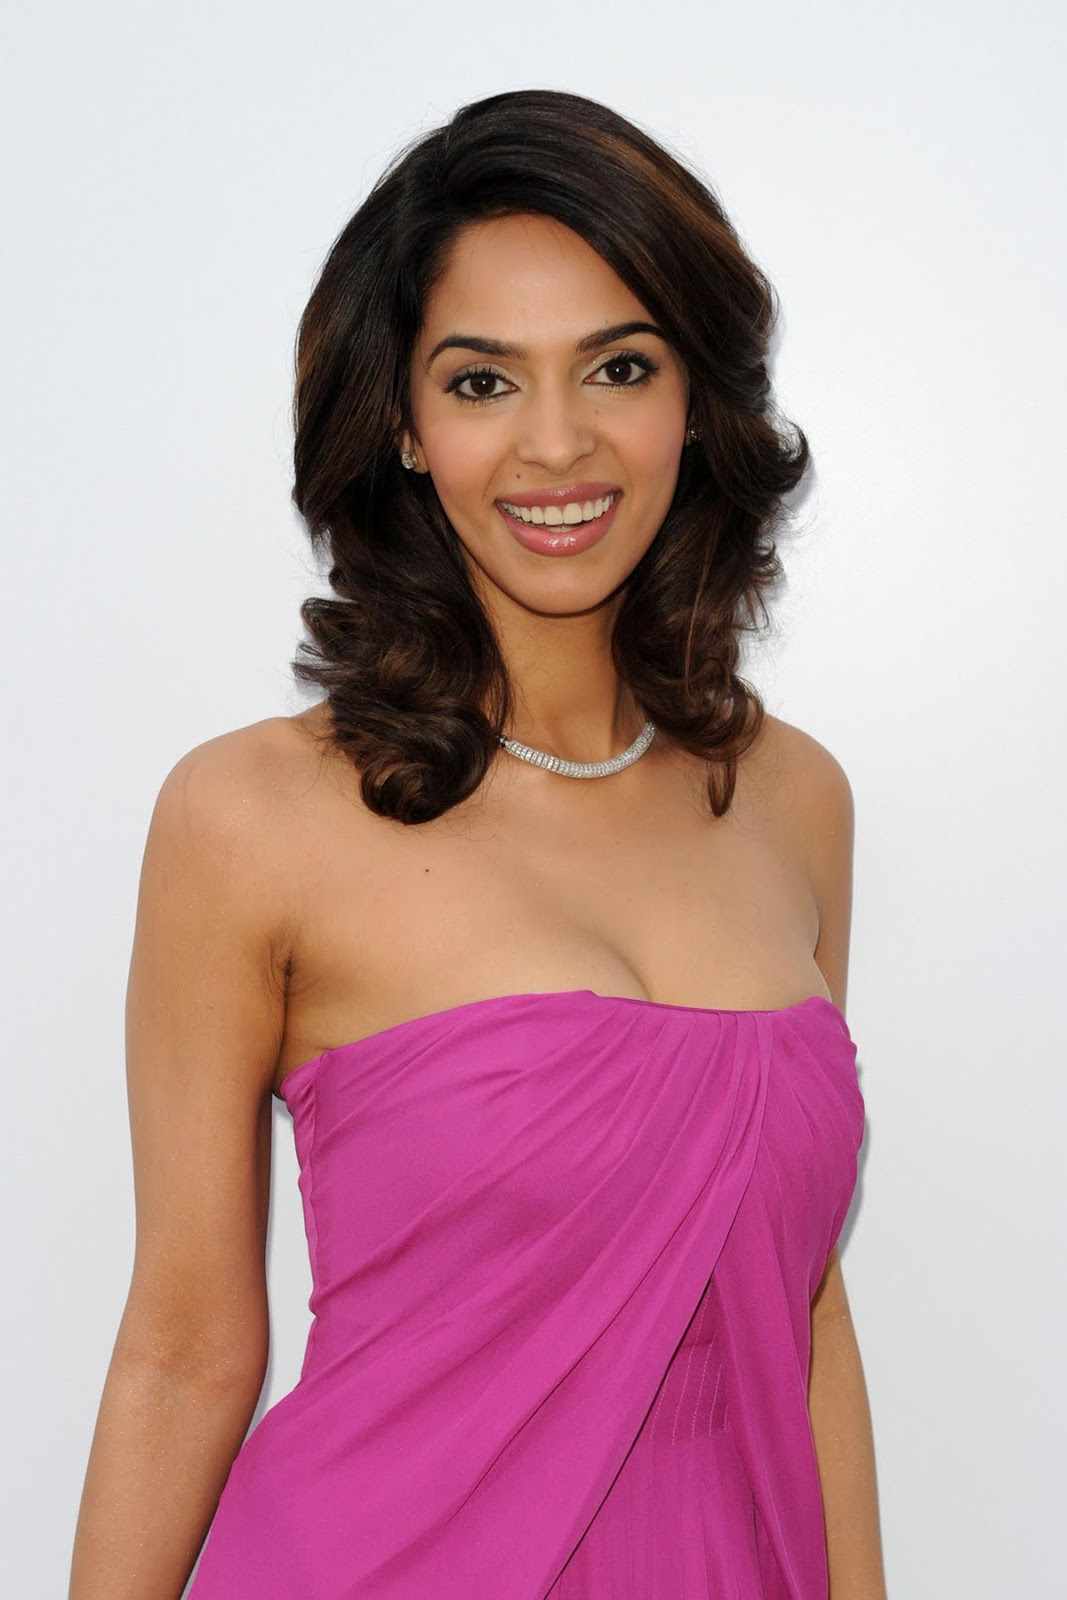 mallika sherawat hd wallpapers high definition free